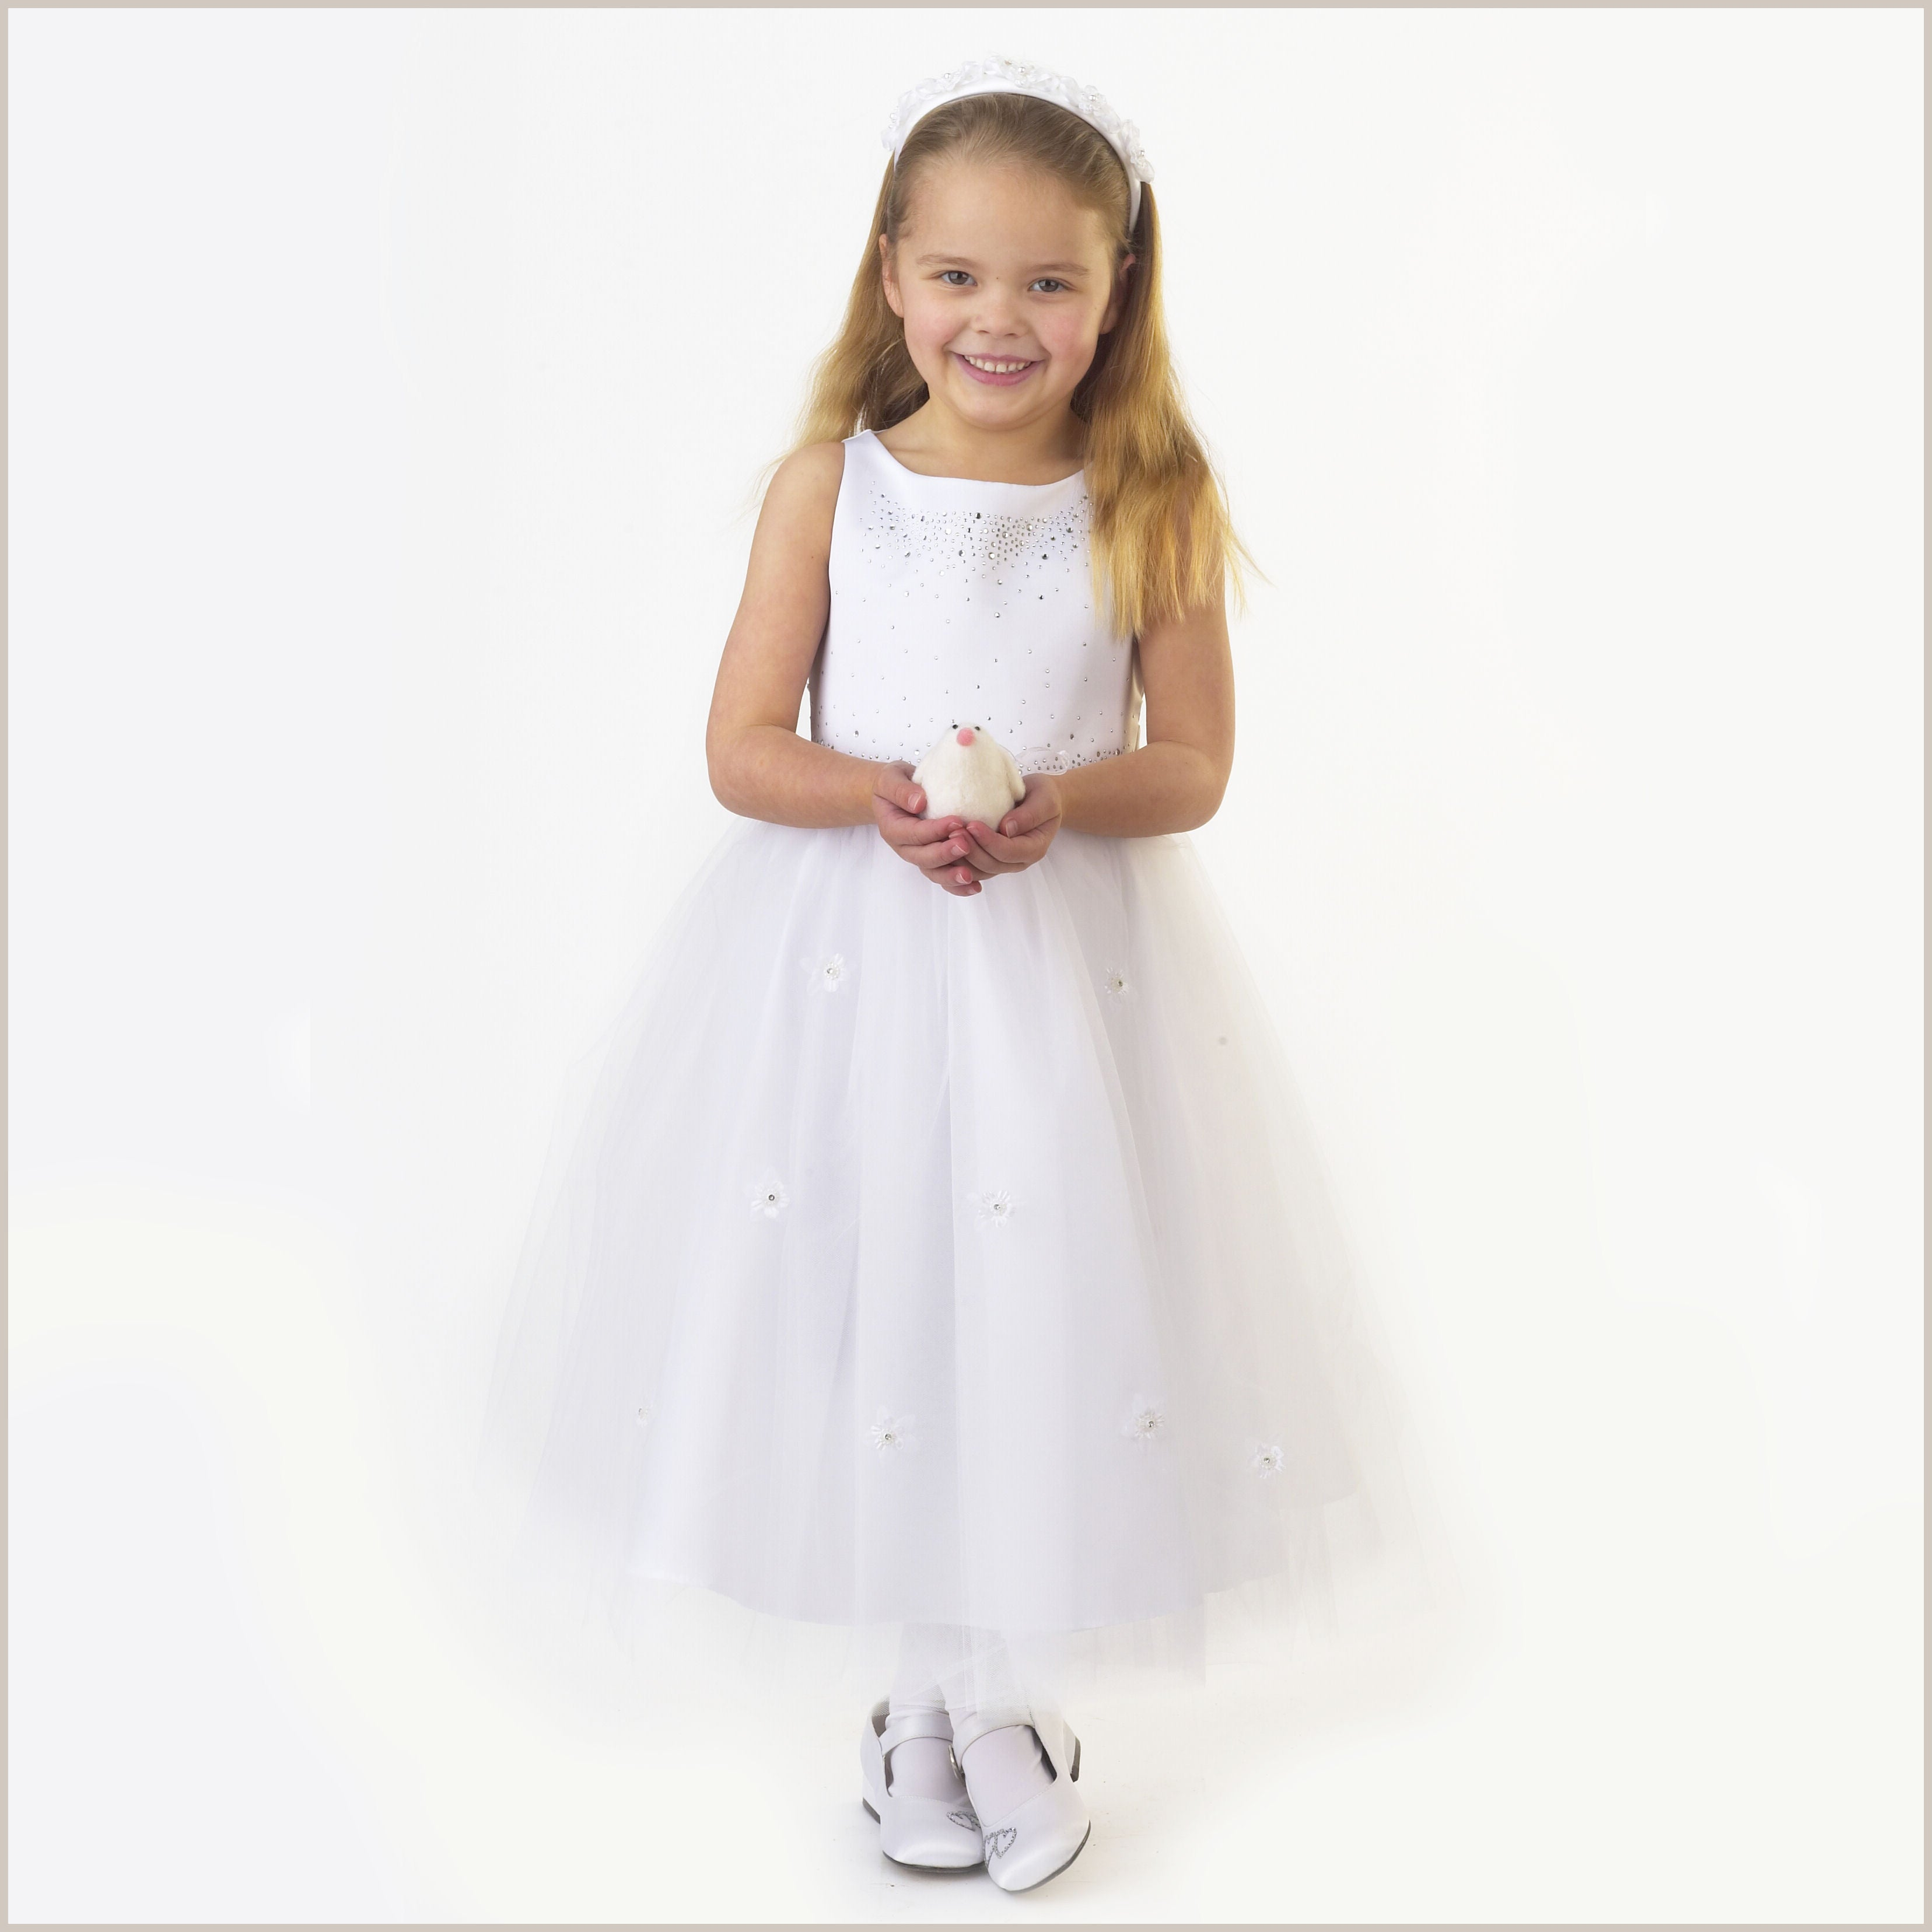 White bridesmaid dresses for children dress ty white bridesmaid dresses for children a3u4eaca ombrellifo Choice Image